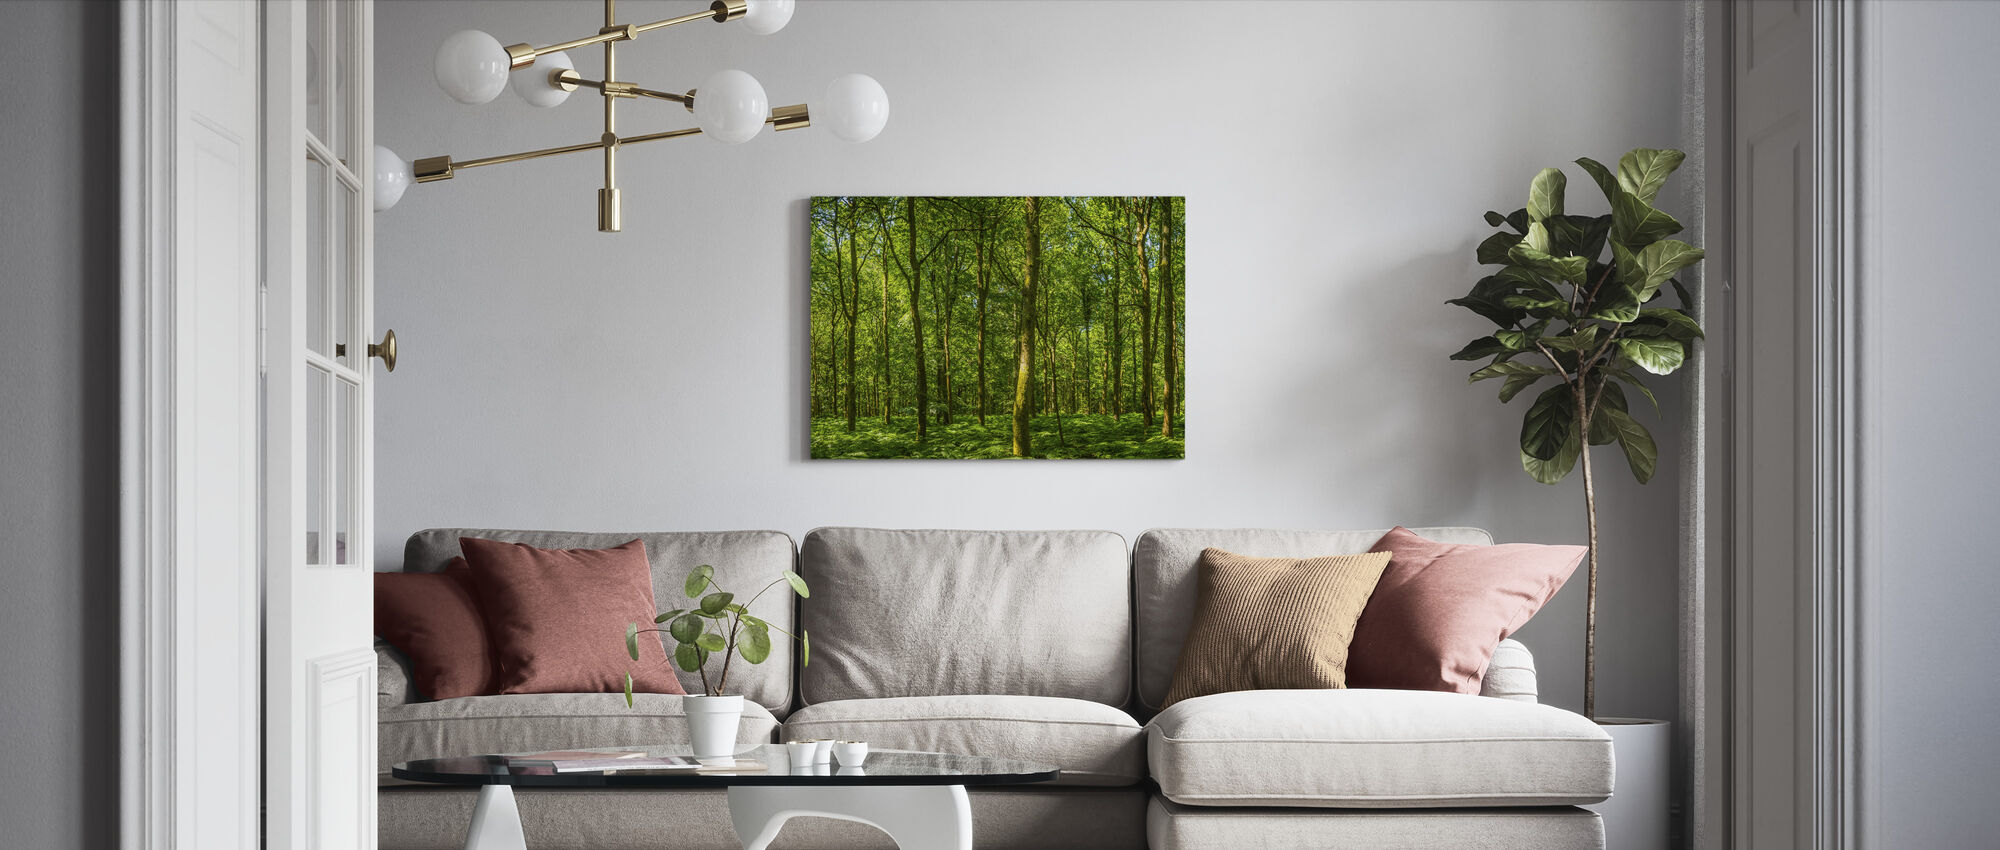 Emerald Green Panorama Forest - Canvas print - Living Room